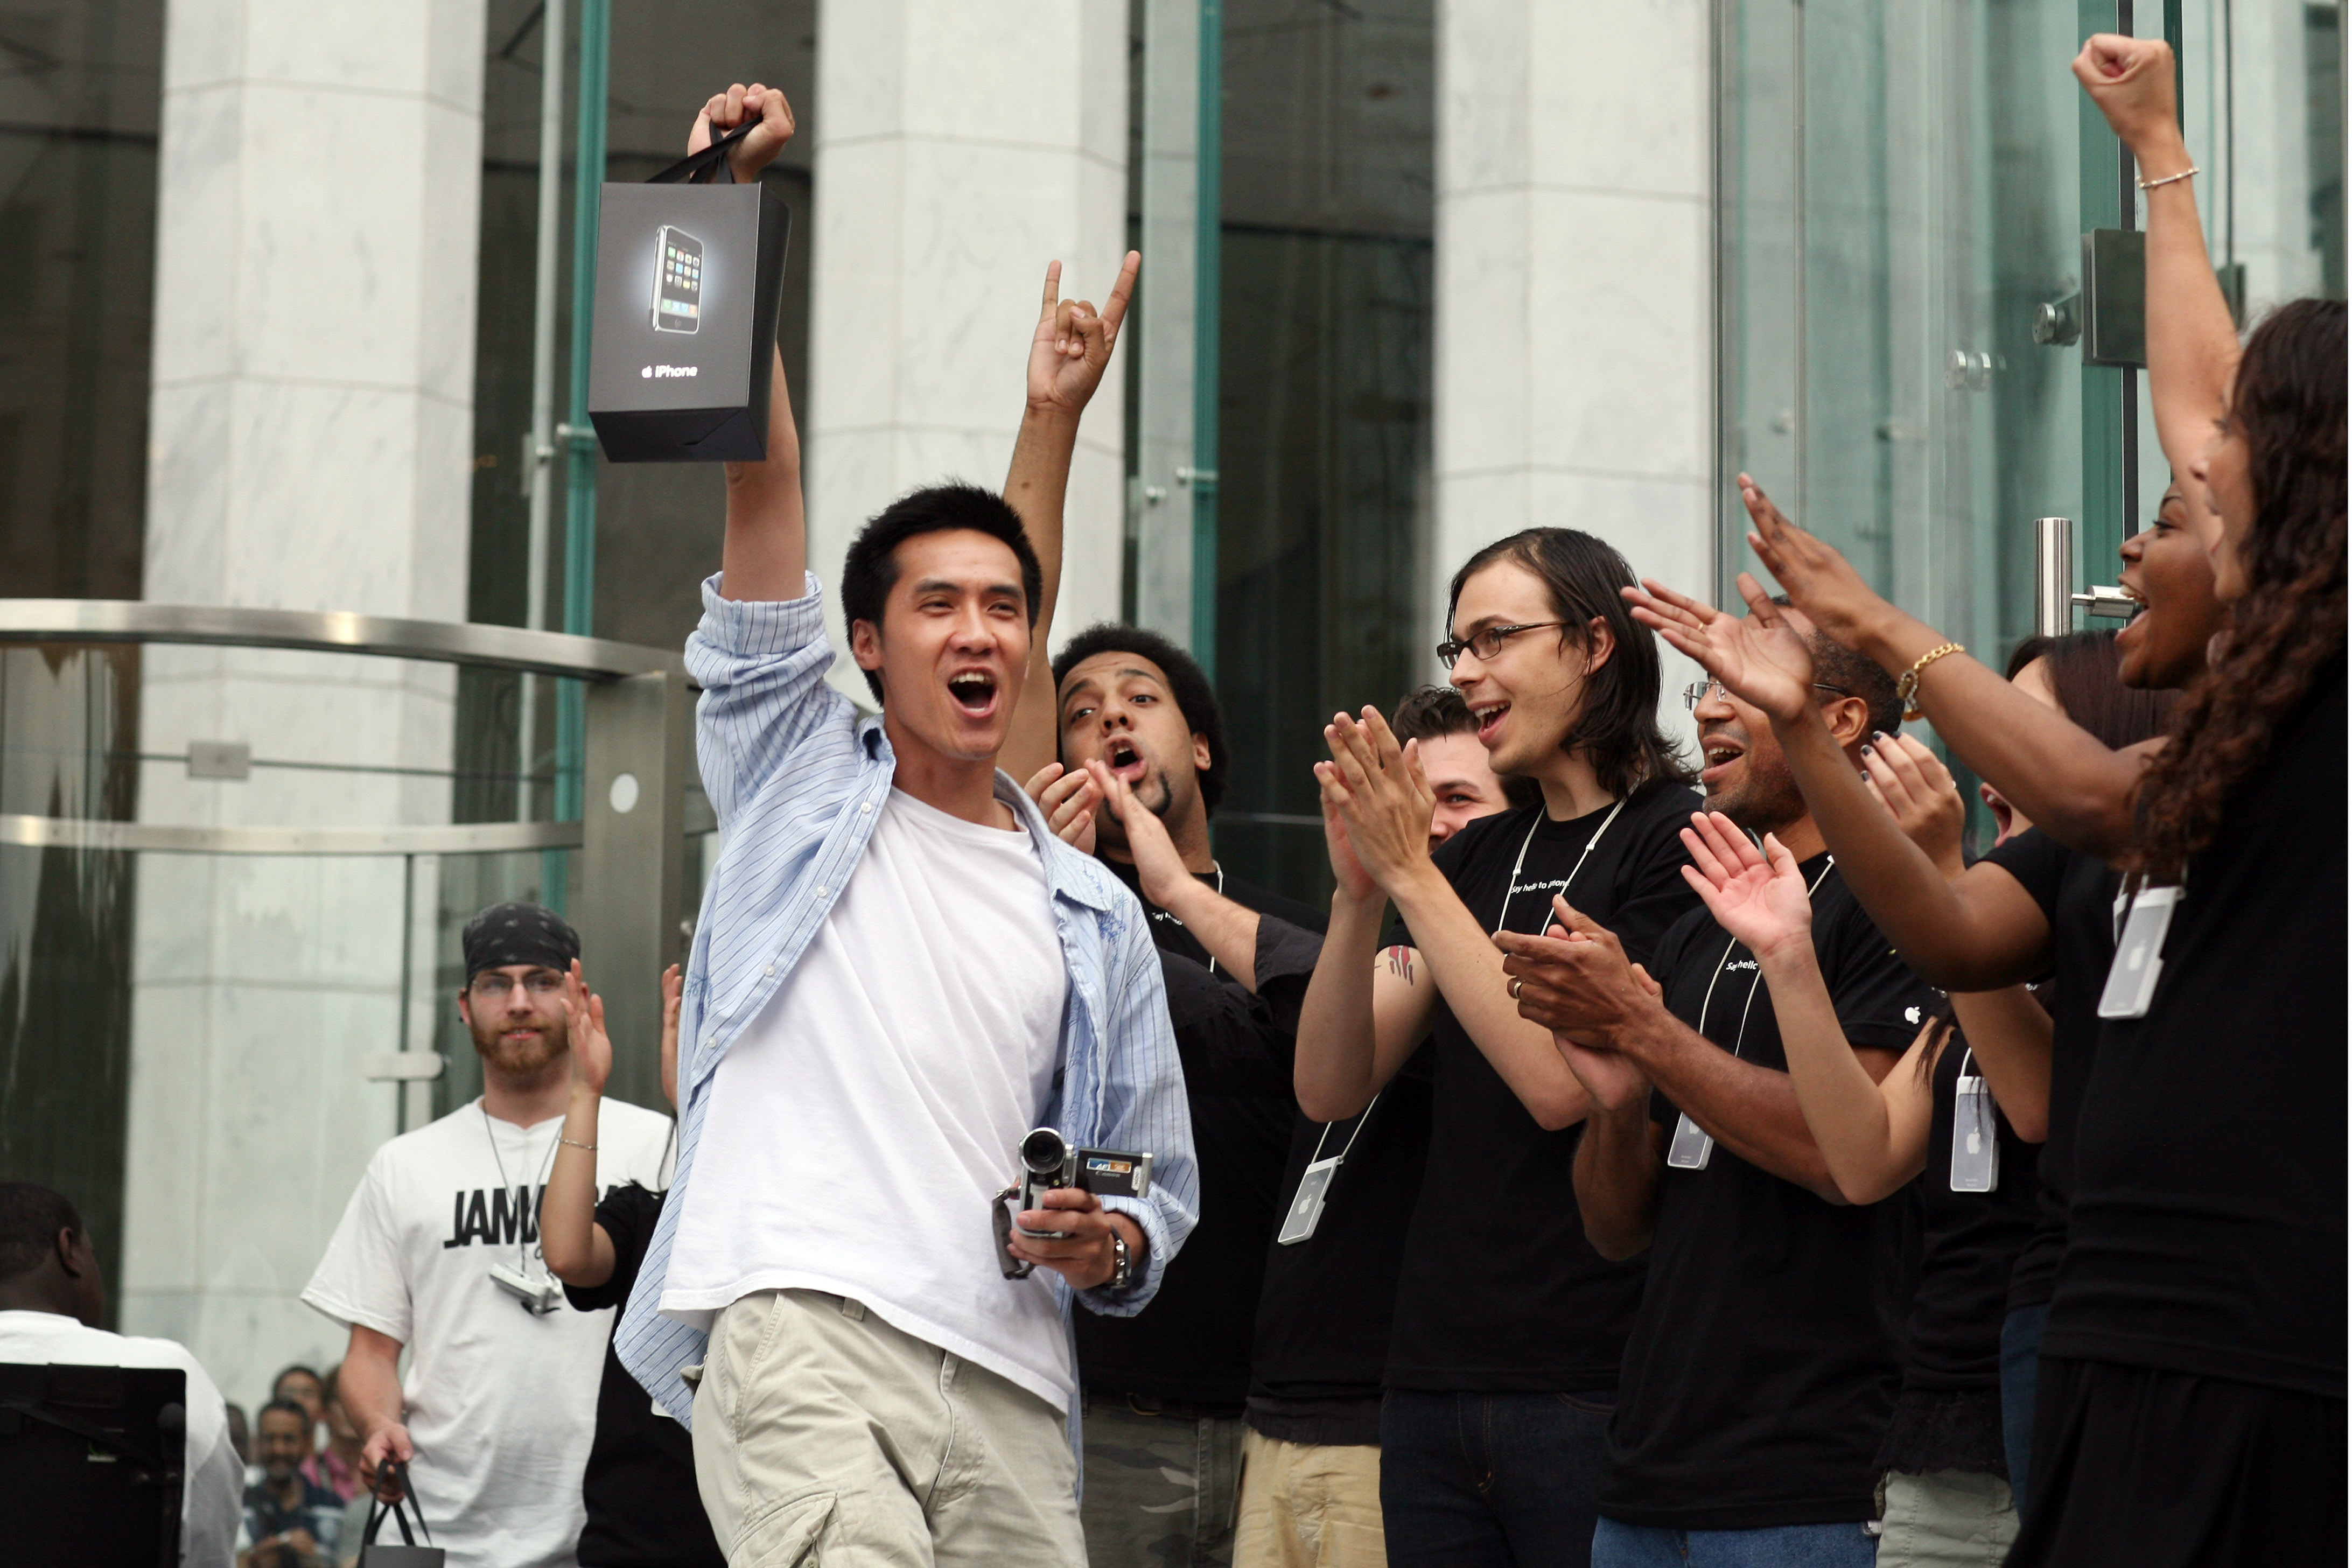 New iPhone owners exit Apple's flagship store, showing off their purchases to the media.